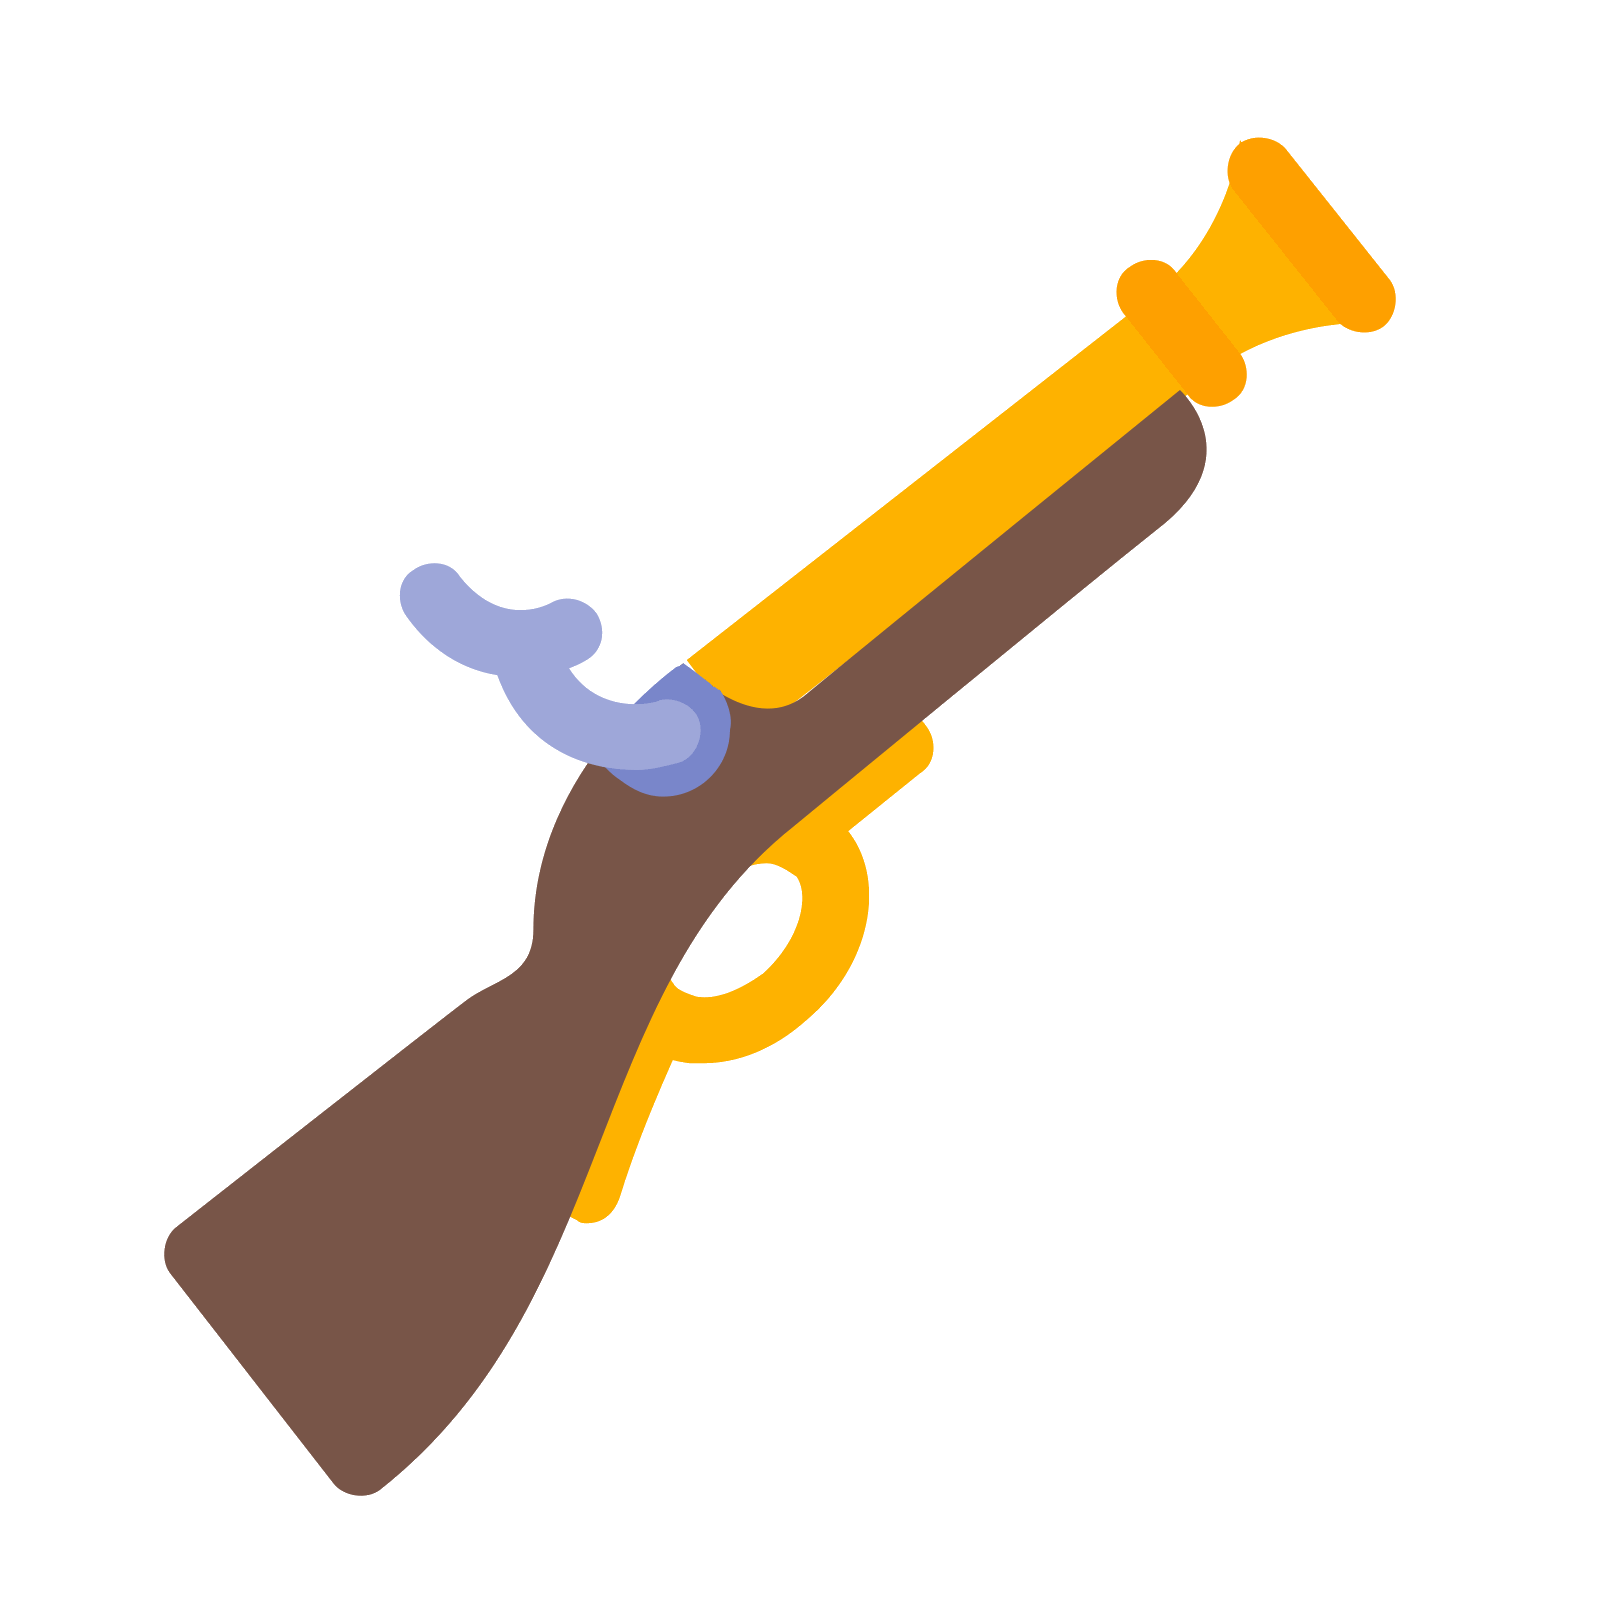 Musket vector clip art. Icon free download png